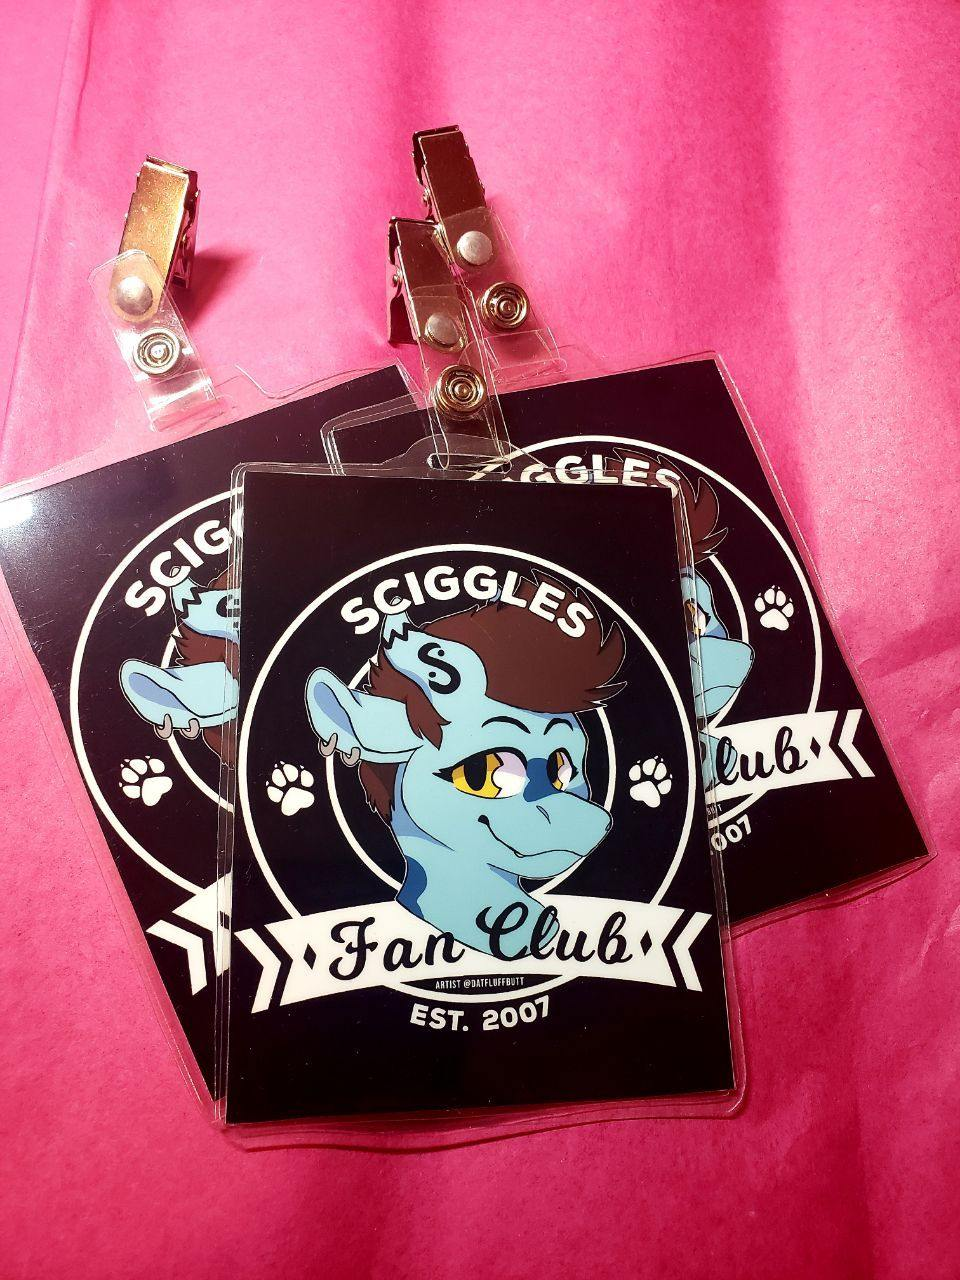 Badges - Other, Badges, Badges, Customizeable, Wearable - Sciggles